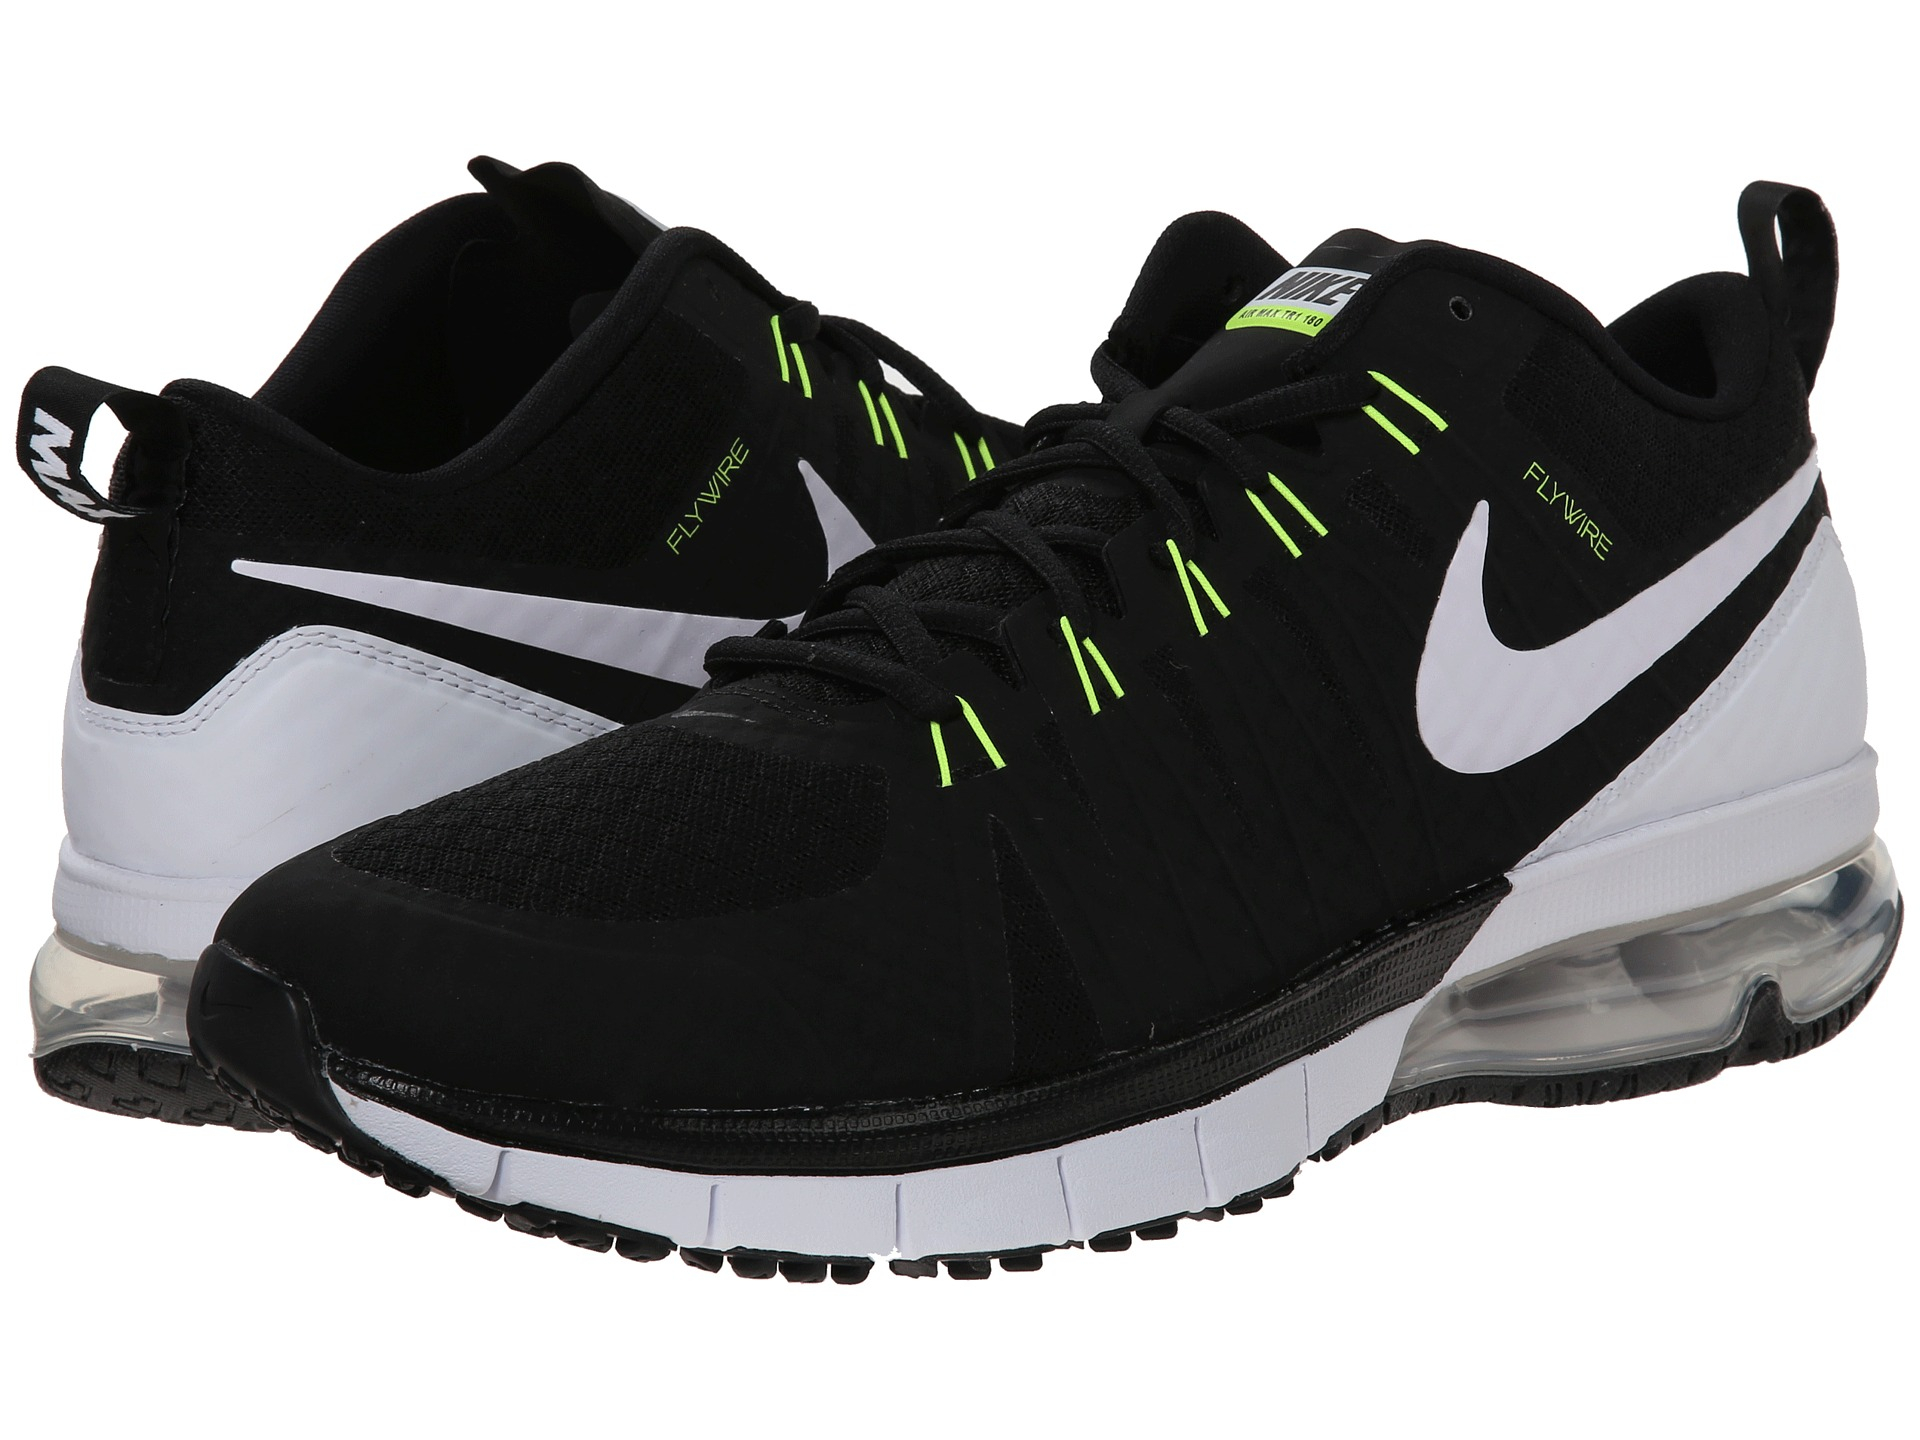 undefeated x fashion style 100% high quality Air Max Tr180